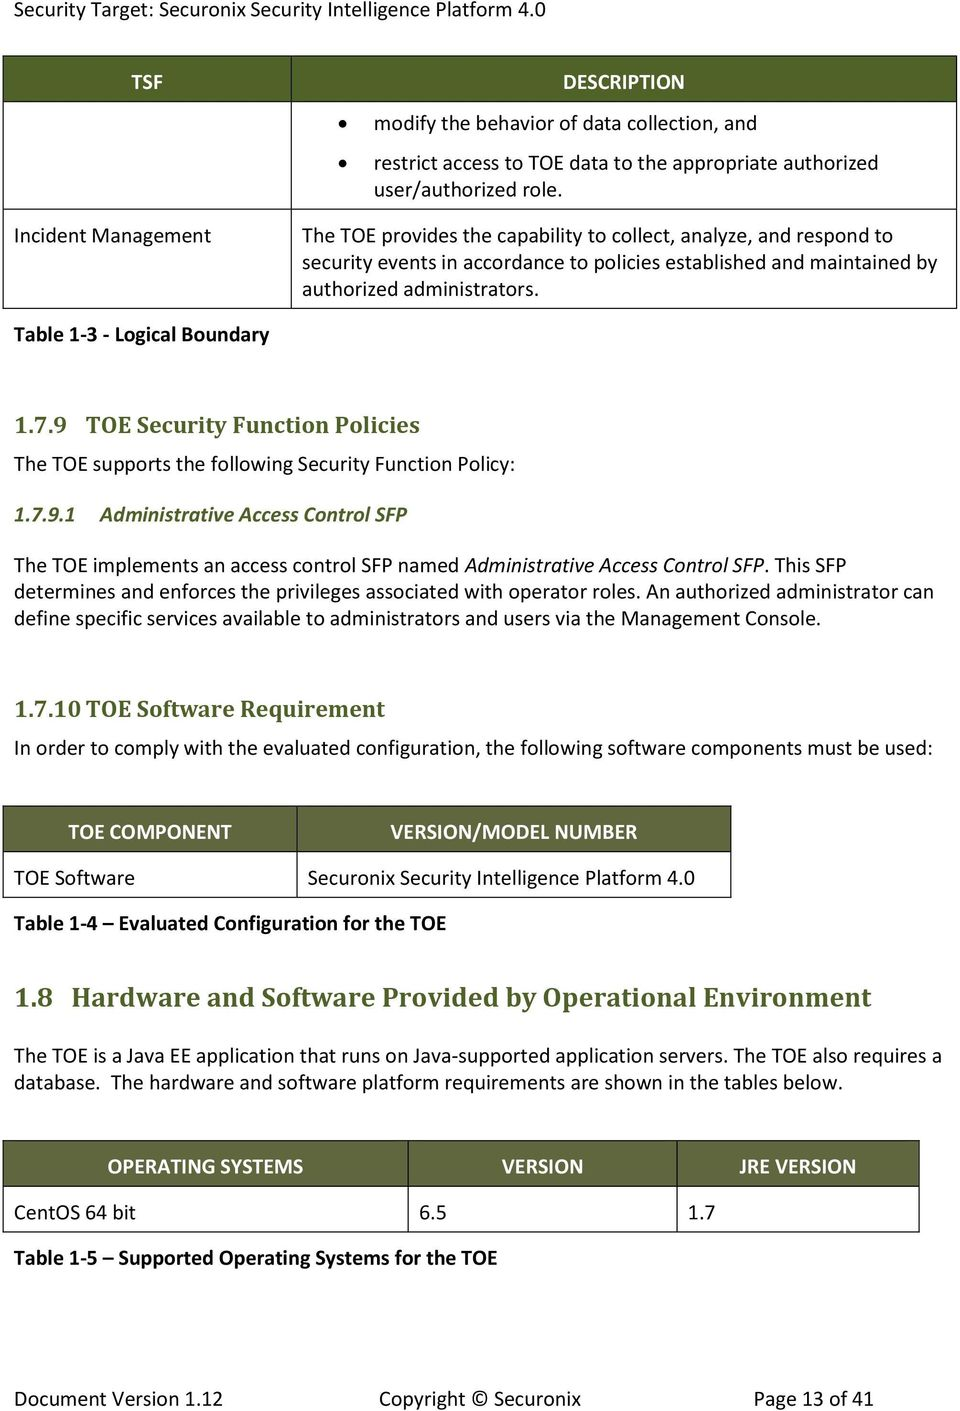 Table 1-3 - Logical Boundary 1.7.9 TOE Security Function Policies The TOE supports the following Security Function Policy: 1.7.9.1 Administrative Access Control SFP The TOE implements an access control SFP named Administrative Access Control SFP.